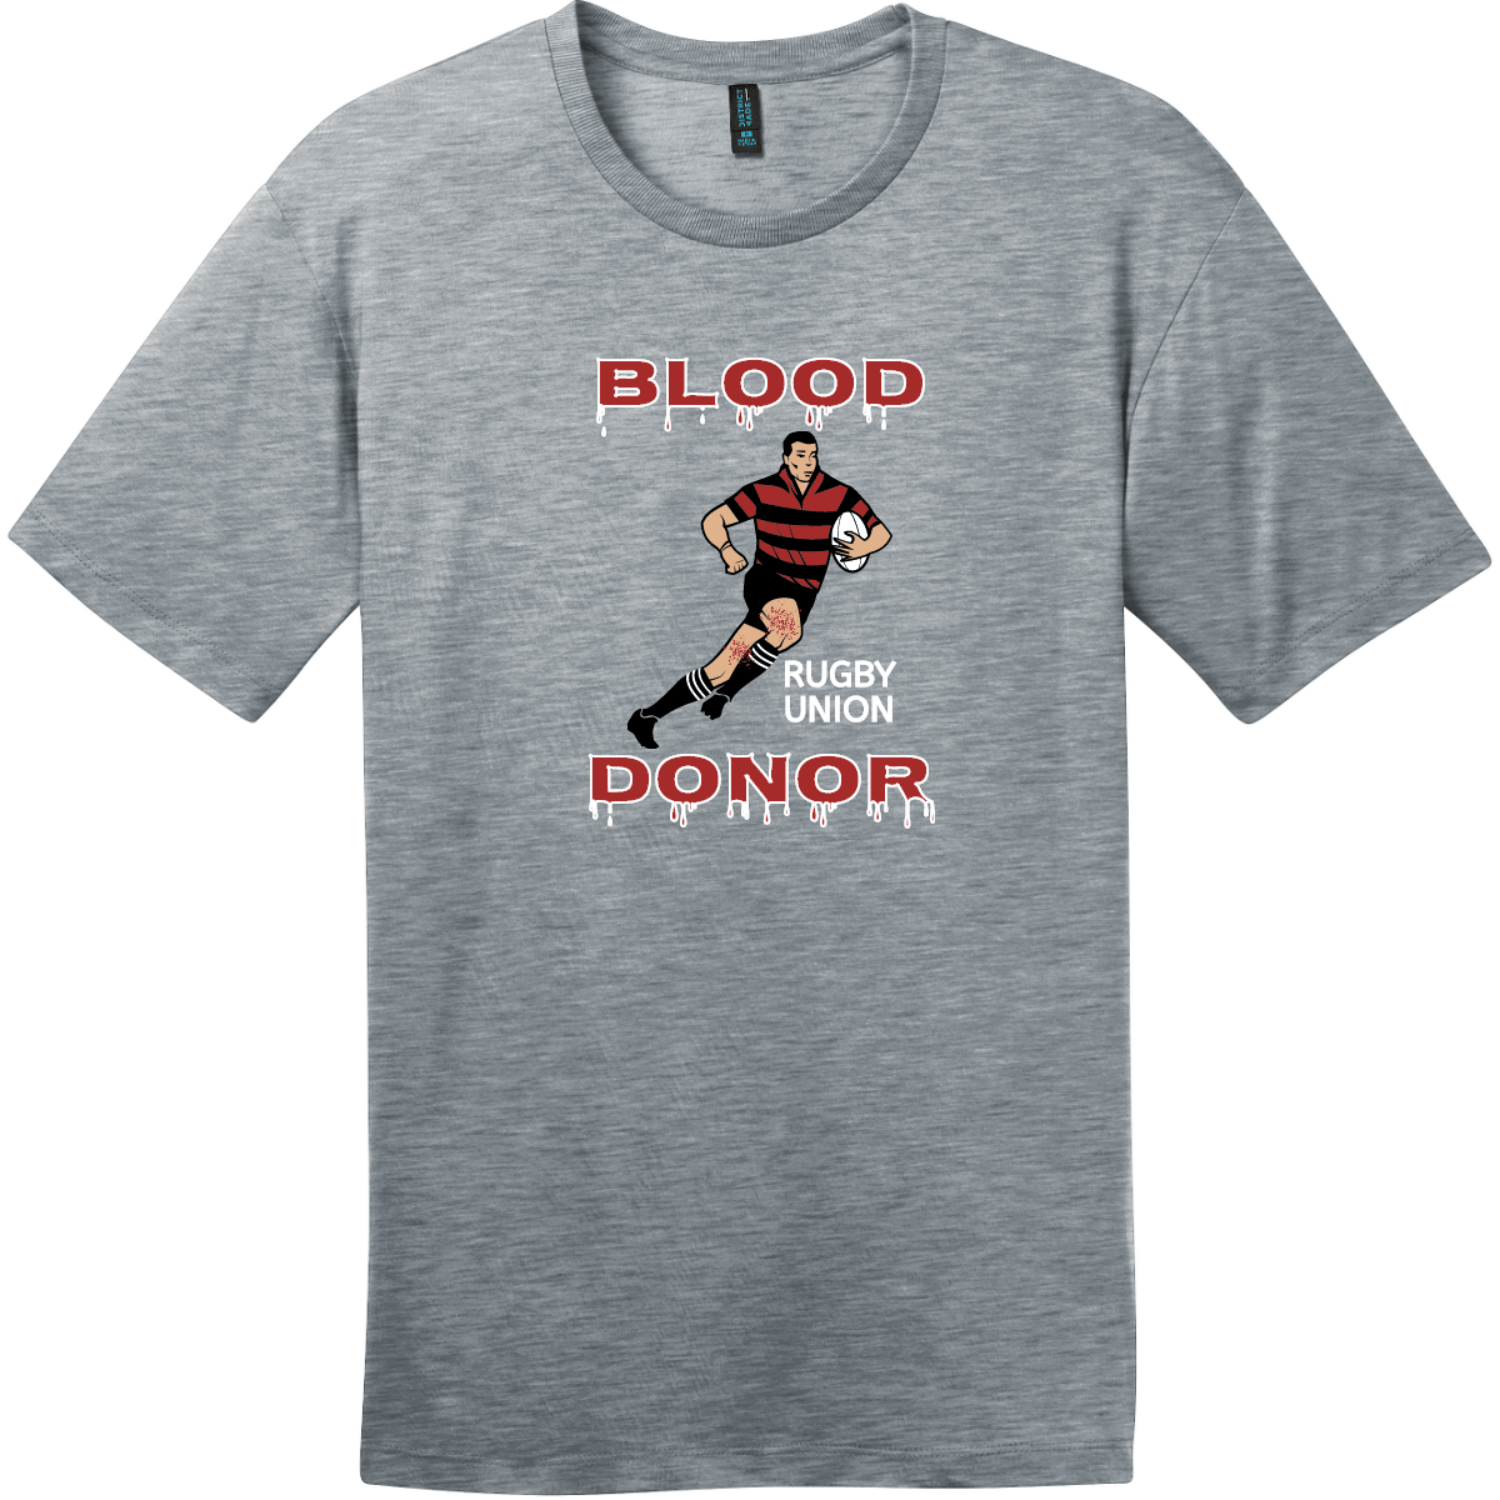 Blood Donor Rugby Union T-Shirt Heathered Steel District Perfect Weight Tee DT104